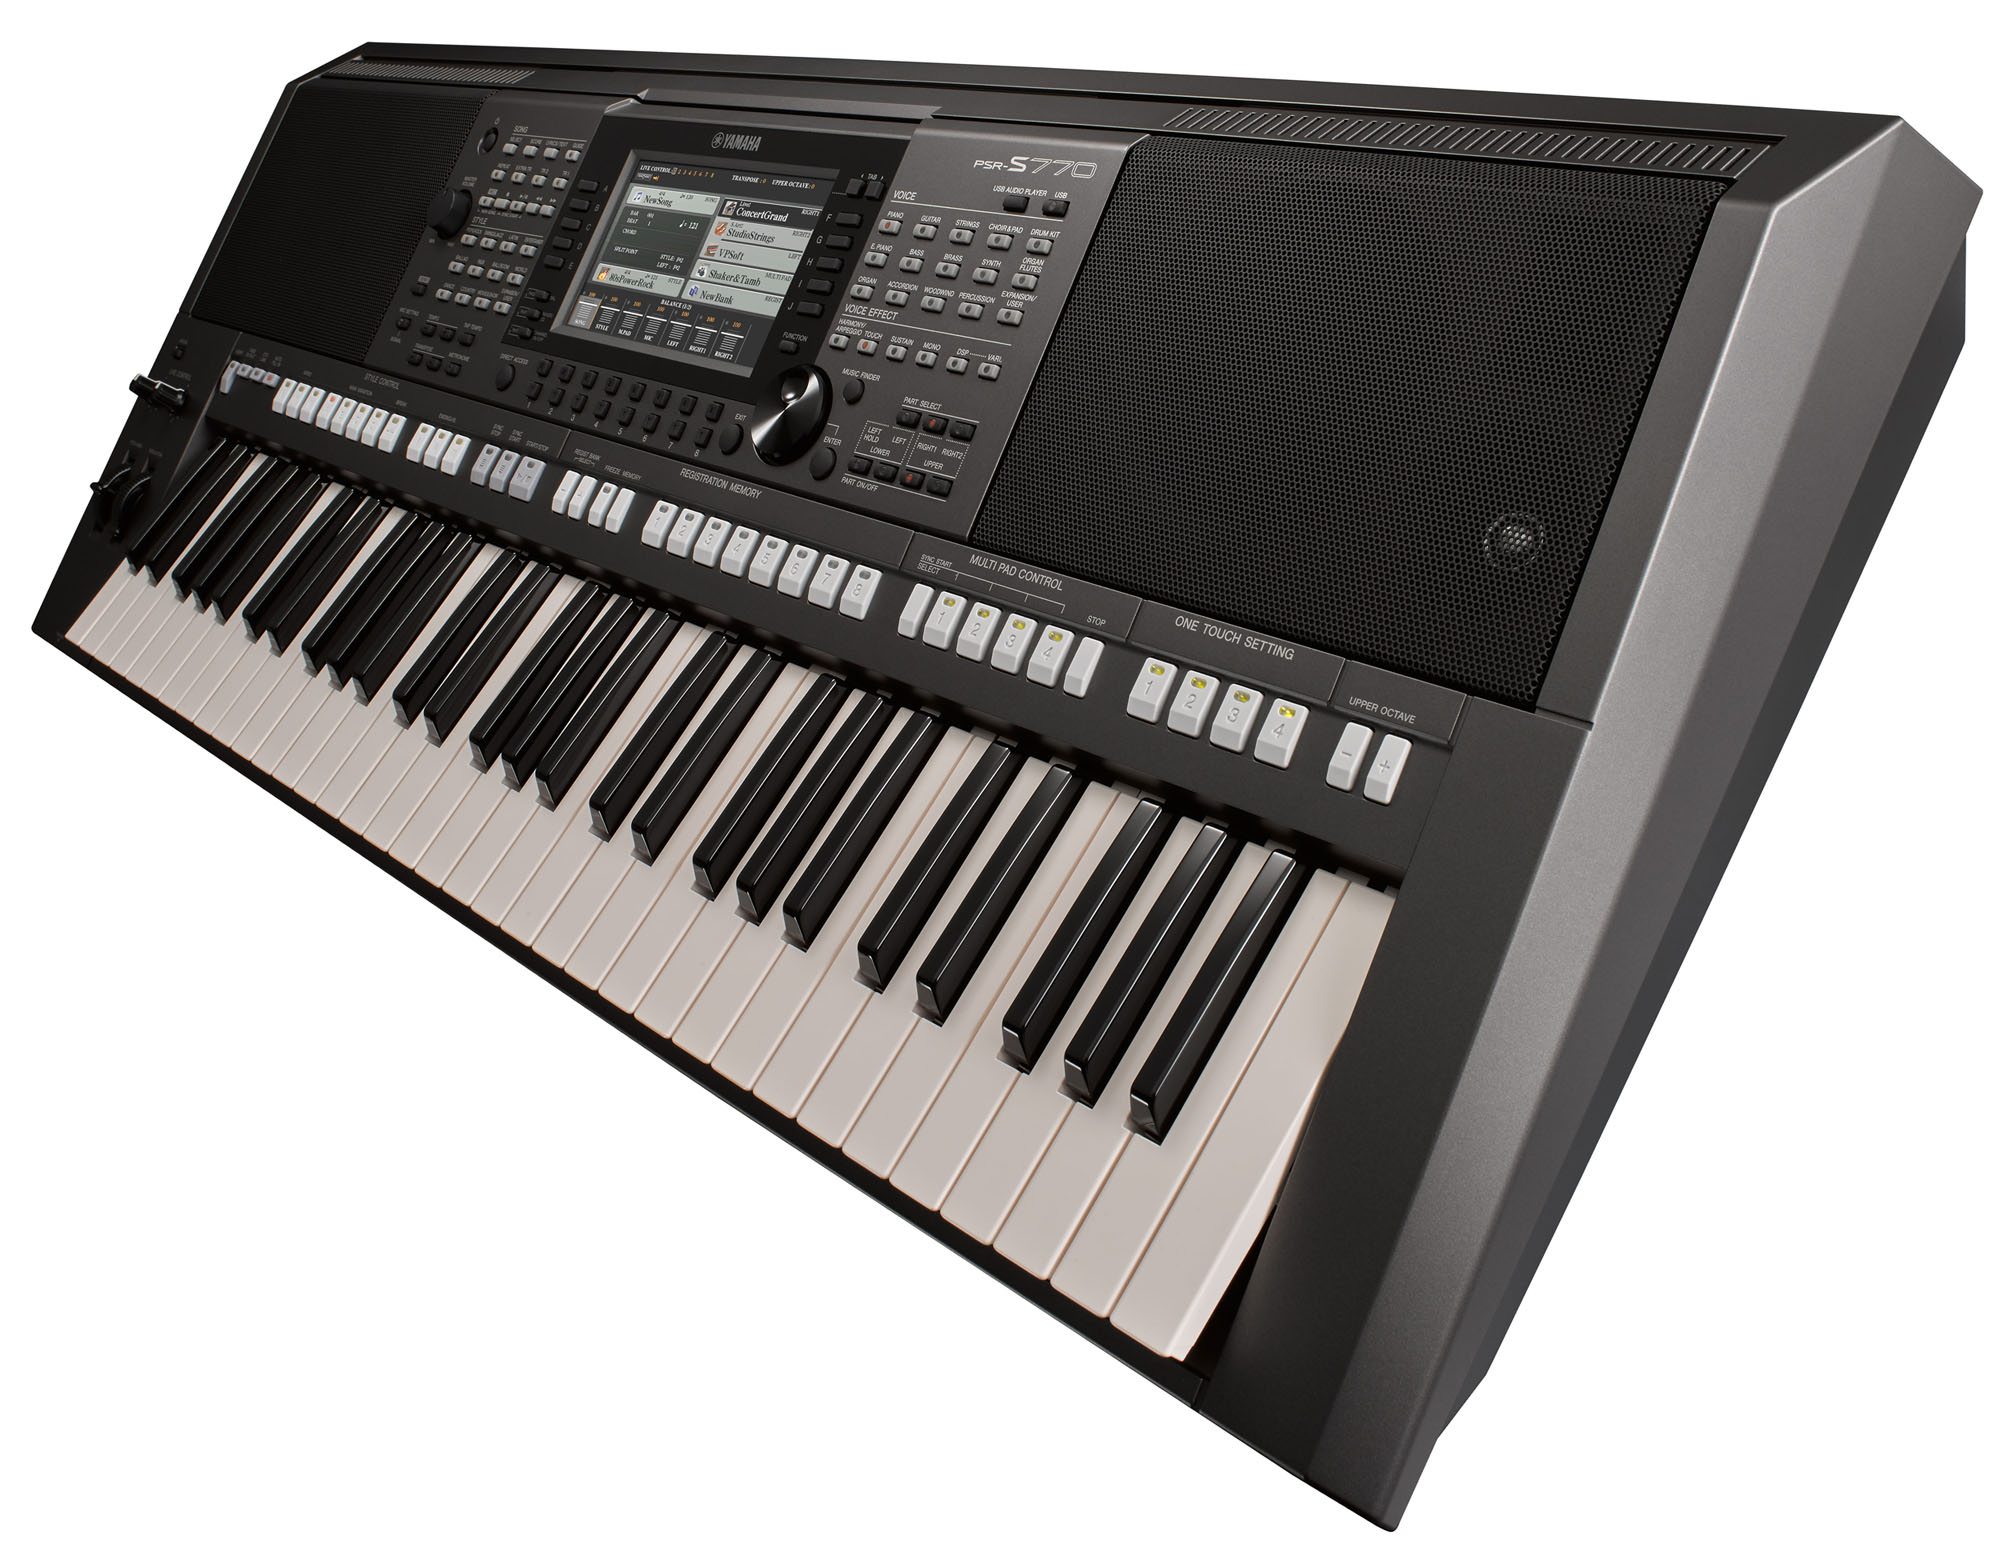 yamaha psr s770 arranger workstation keyboard yamaha. Black Bedroom Furniture Sets. Home Design Ideas